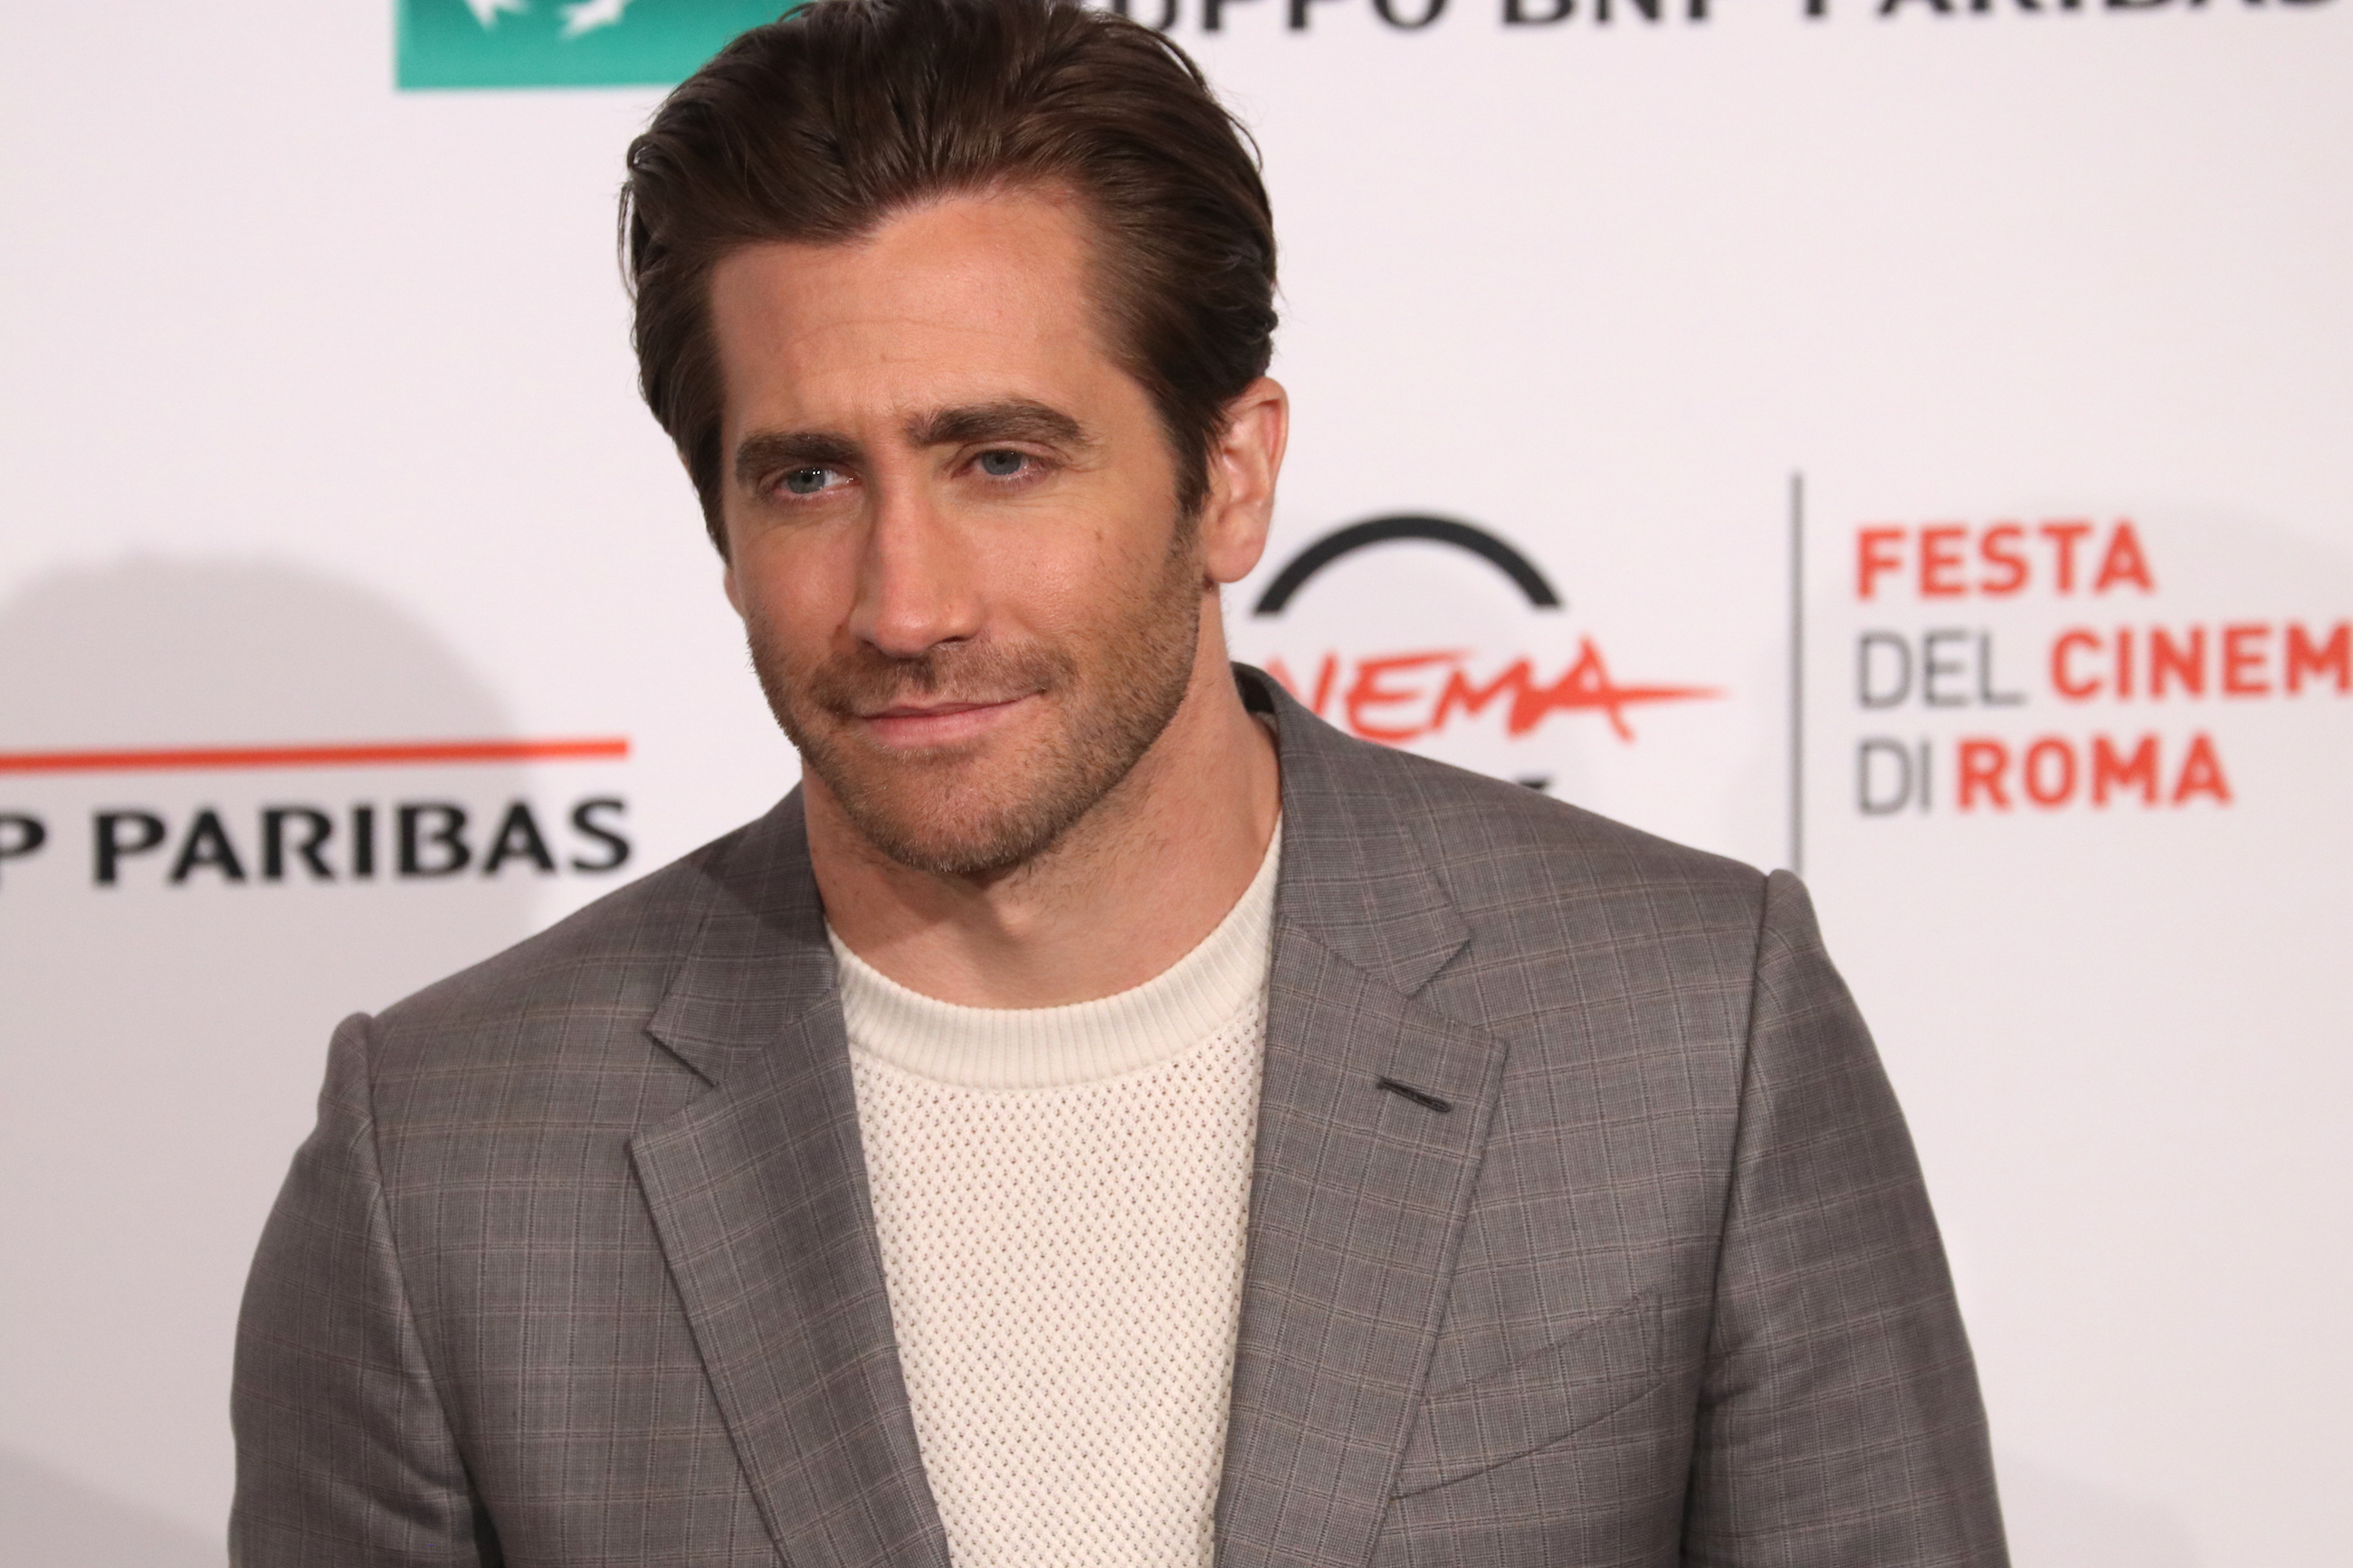 Roma 2017: Jake Gyllenhaal in posa al photocall del film Stronger